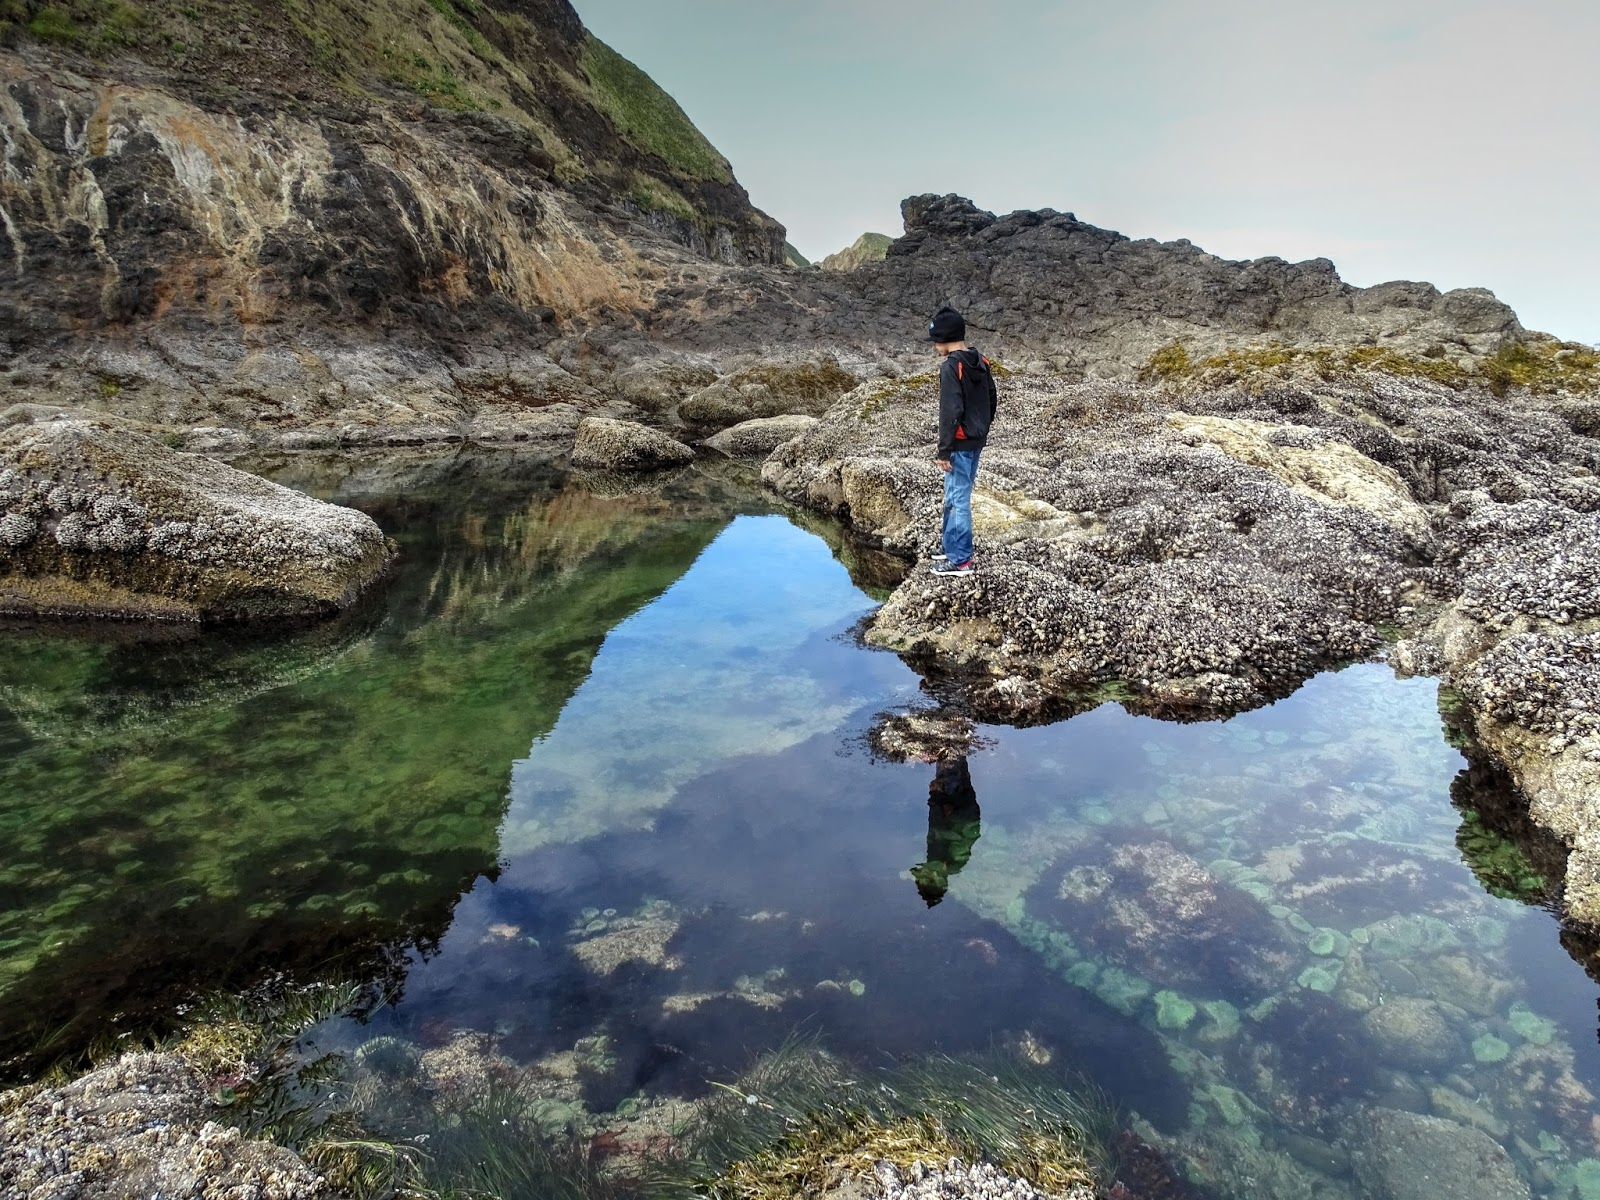 This Is The Largest Tide Pool We Found During Our Lost Boy Adventure It S Located On Rocks Between Short Beach And Cave